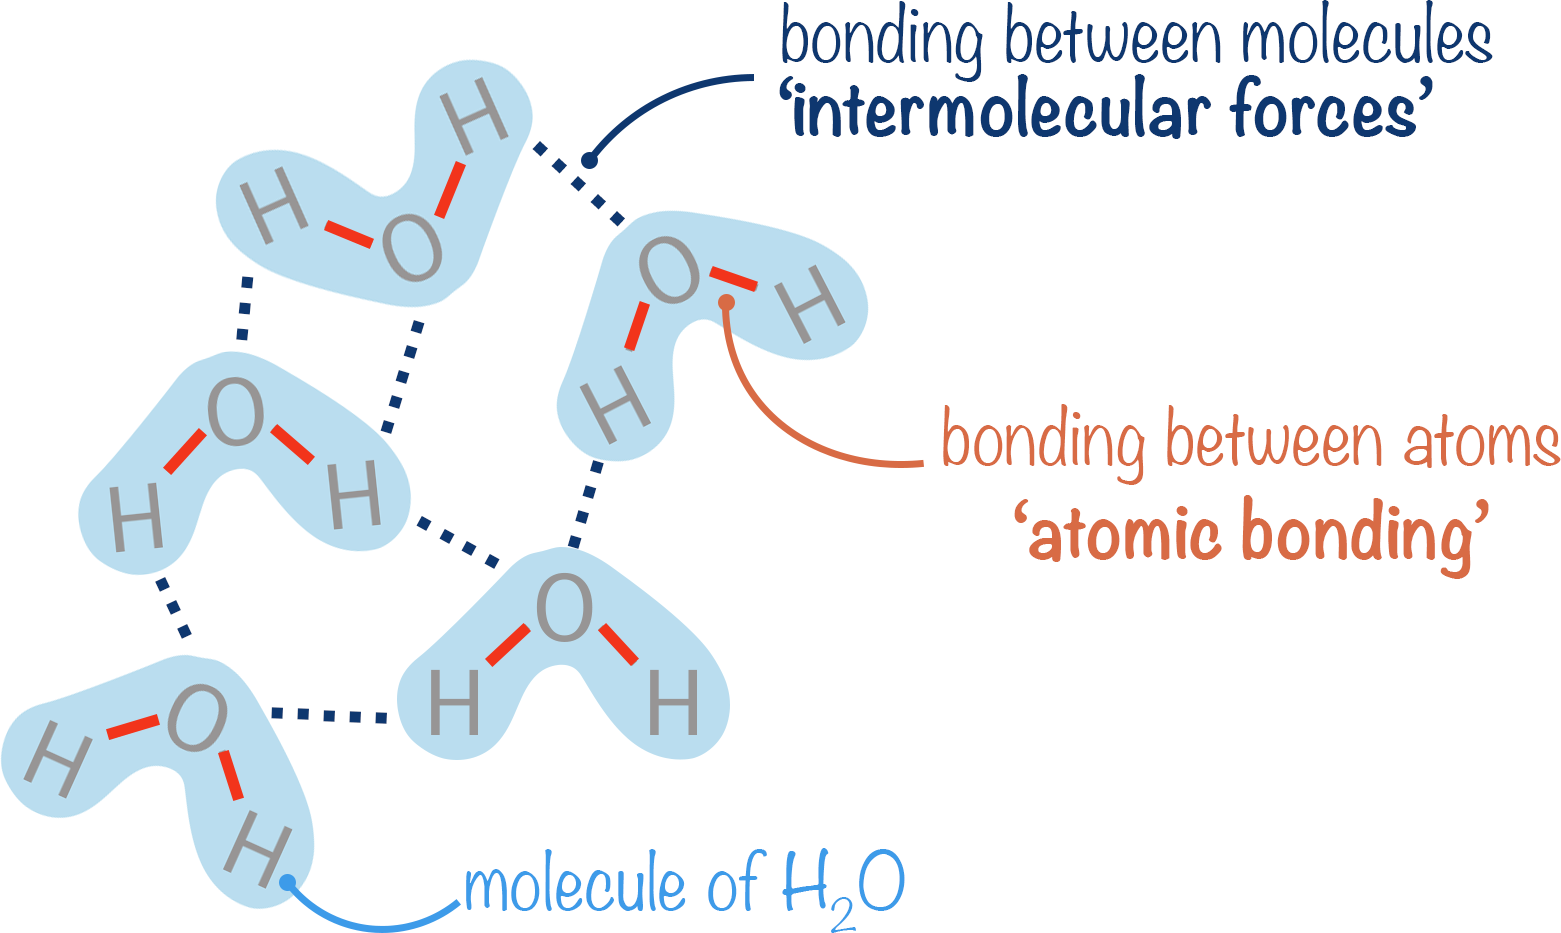 intermolecular forces and atomic bonding within water